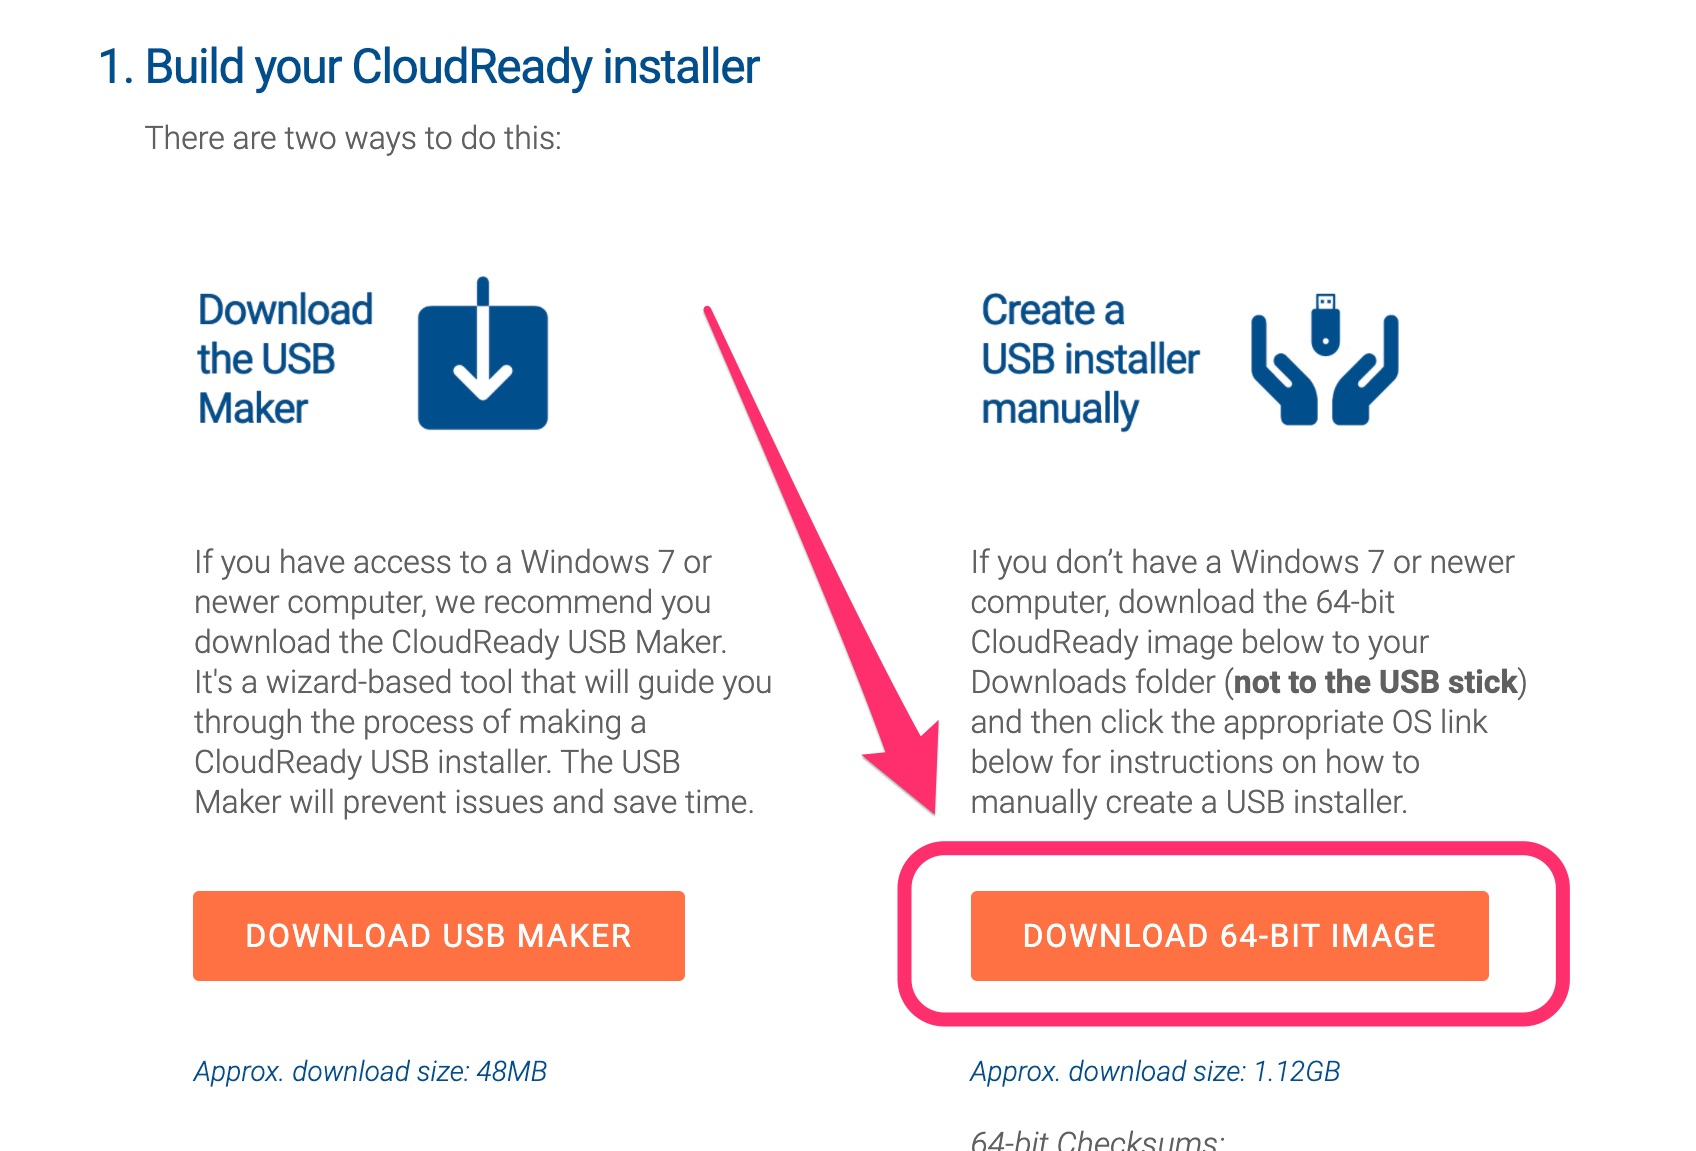 Create a USB installer manually